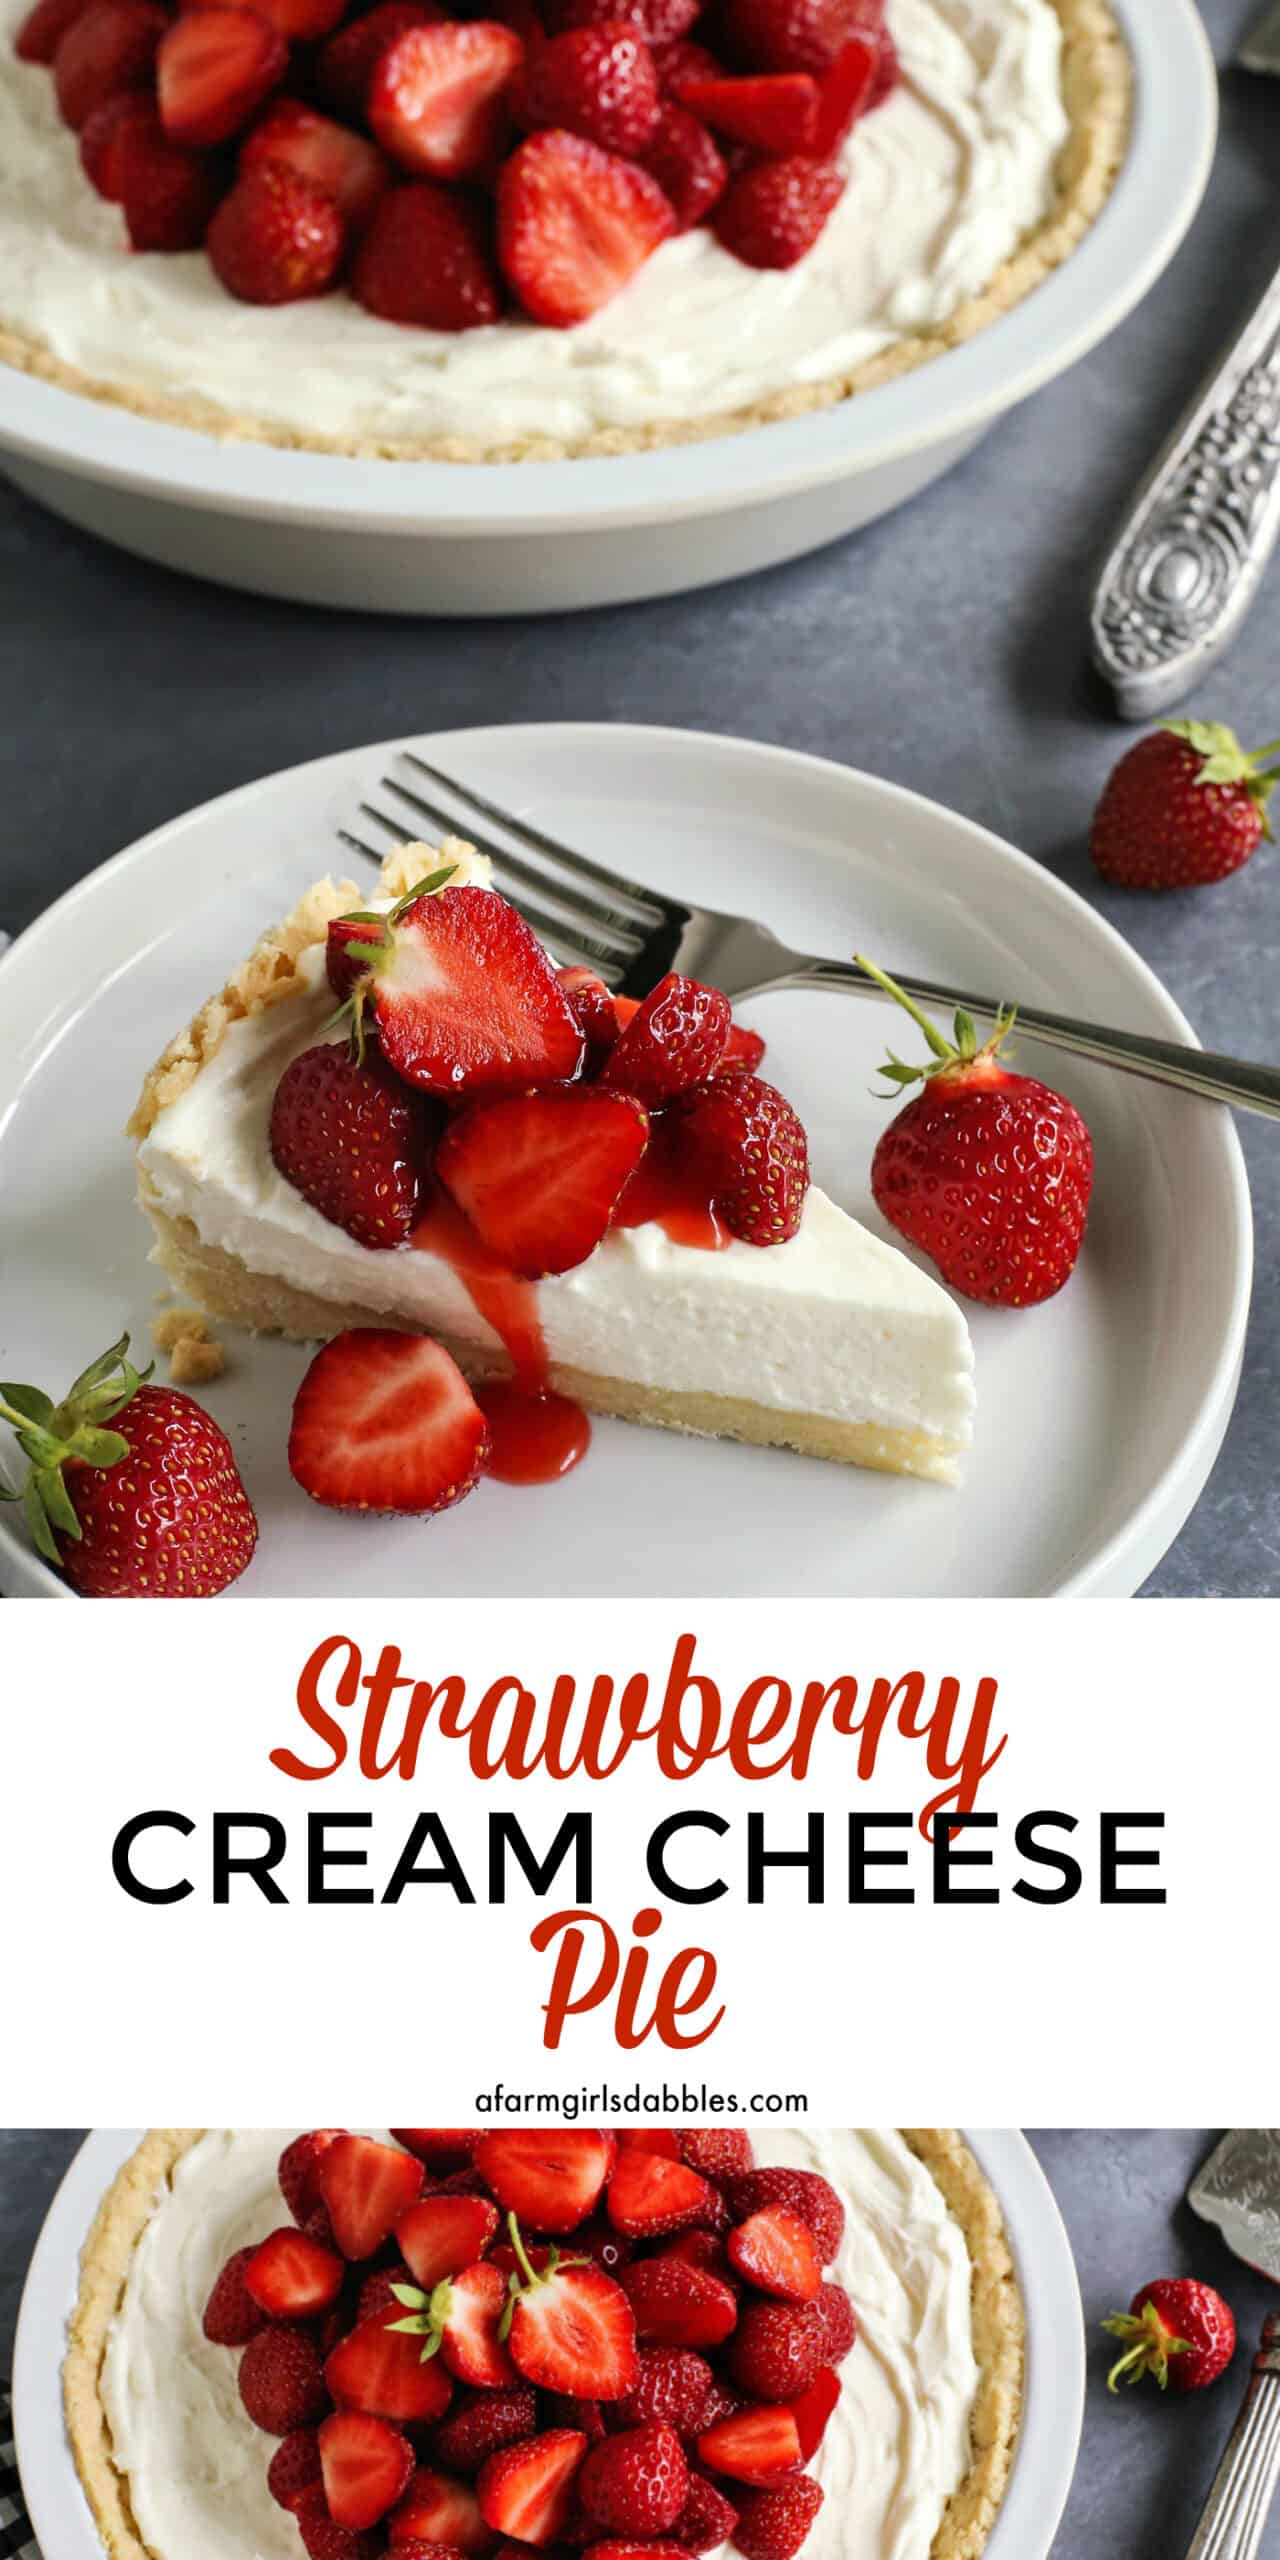 Pinterest image of strawberry cream cheese pie